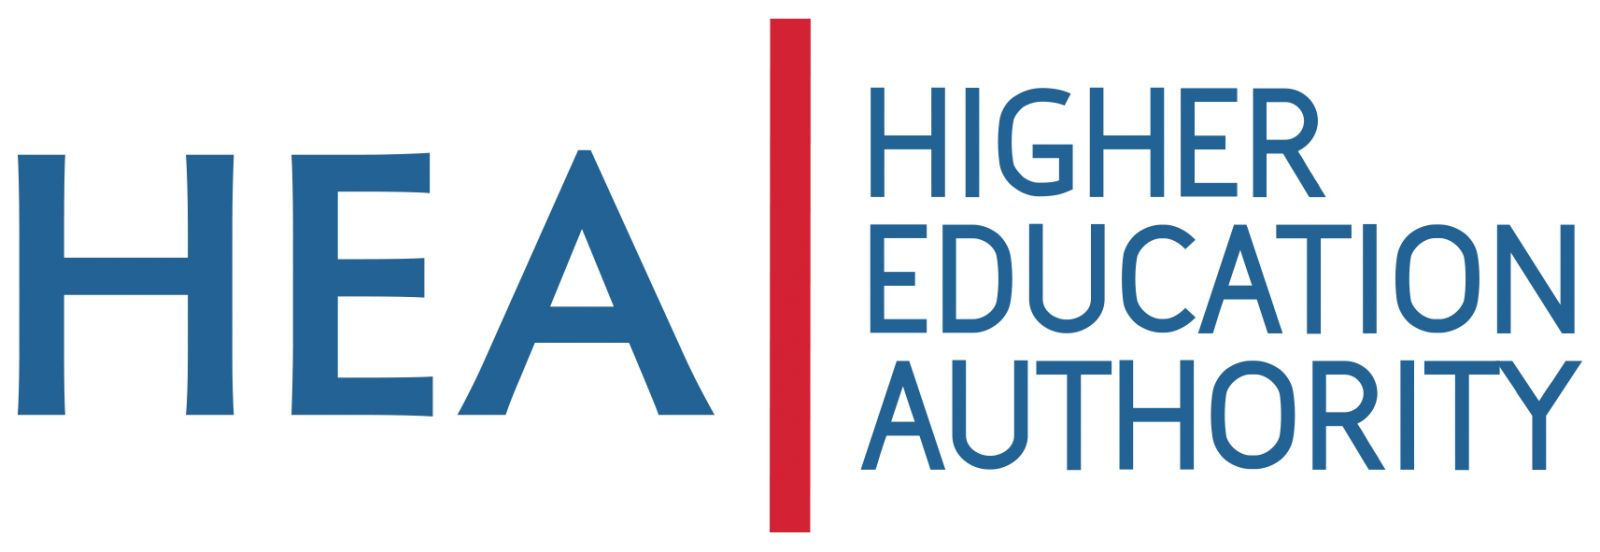 Higher Education Authority Logo